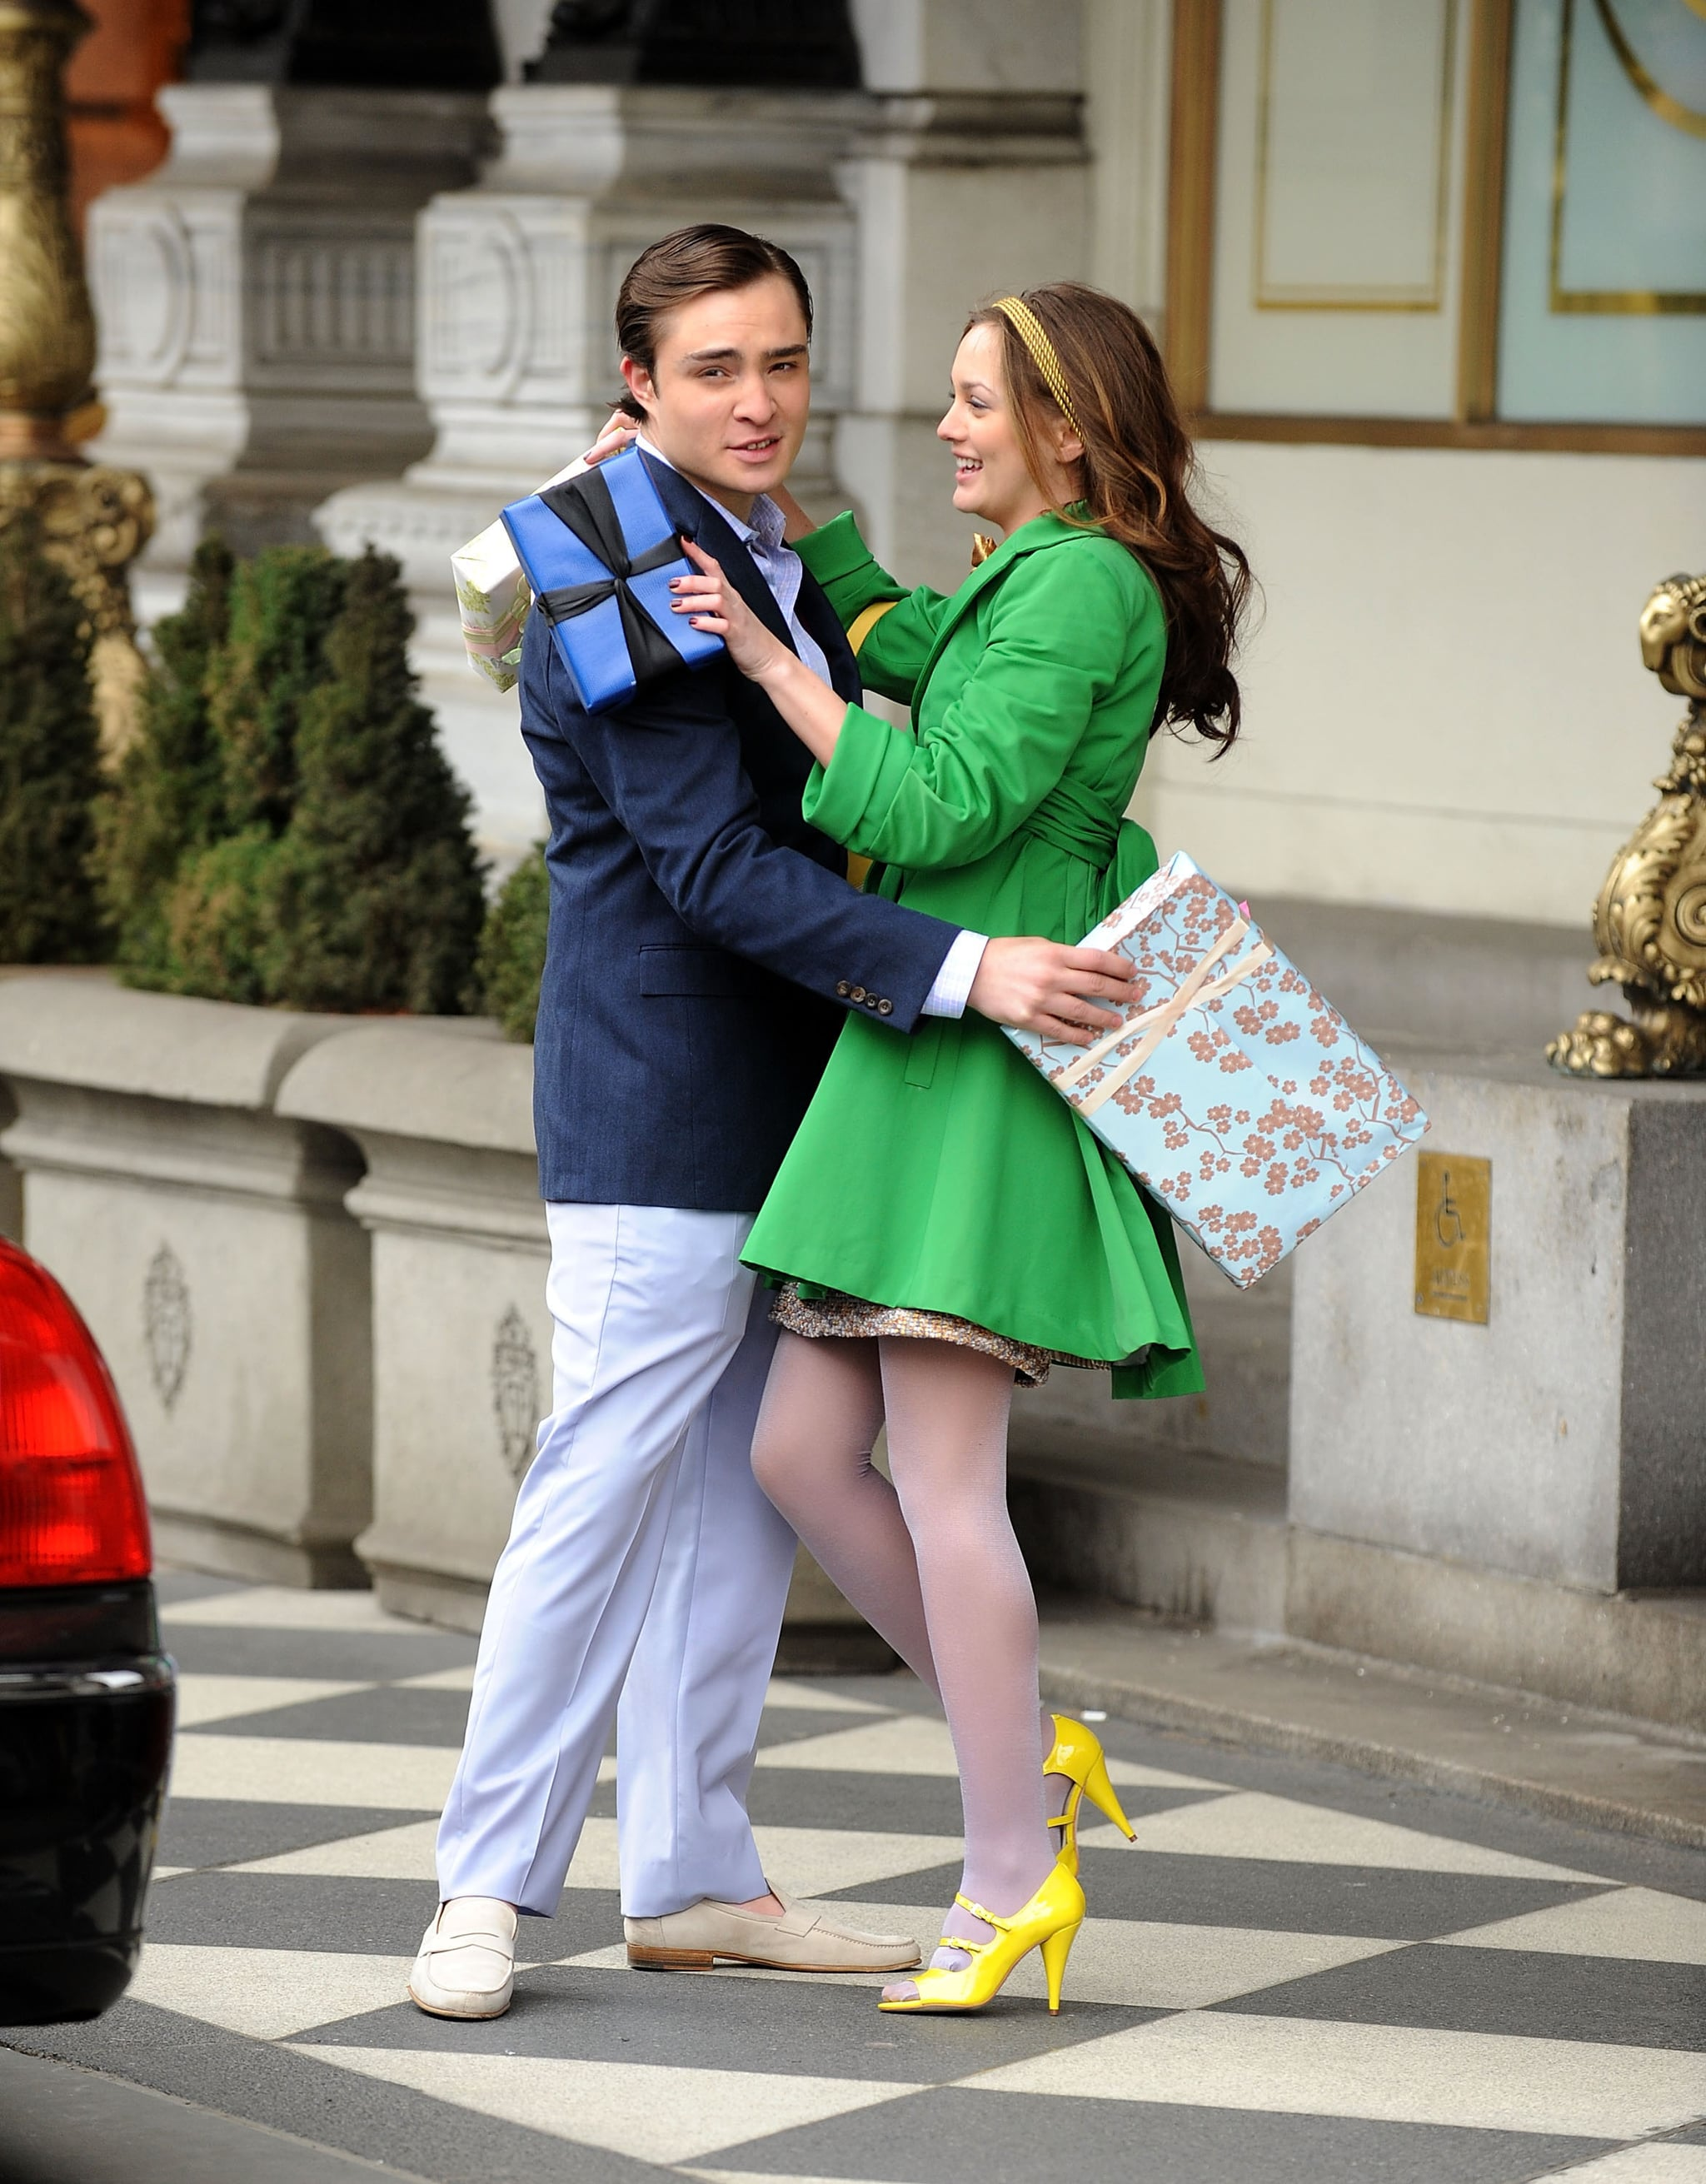 Ed Westwick and Leighton Meester put on their brightest smiles, and coats, for the cameras in March 2009.